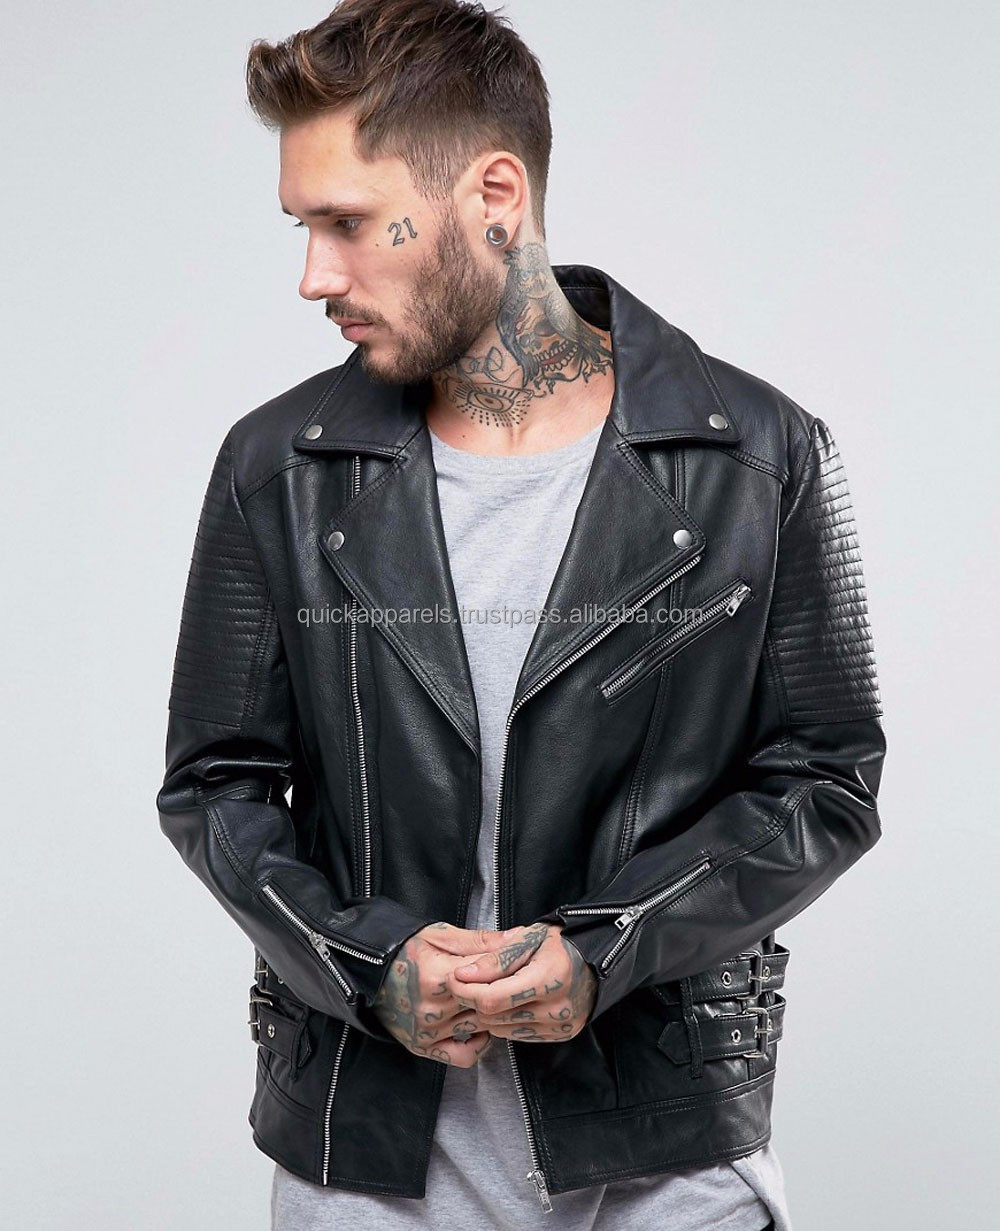 Fashion high quality cheap leather motorcycle jacket Cheap custom Wholesale high quality men fashion jackets